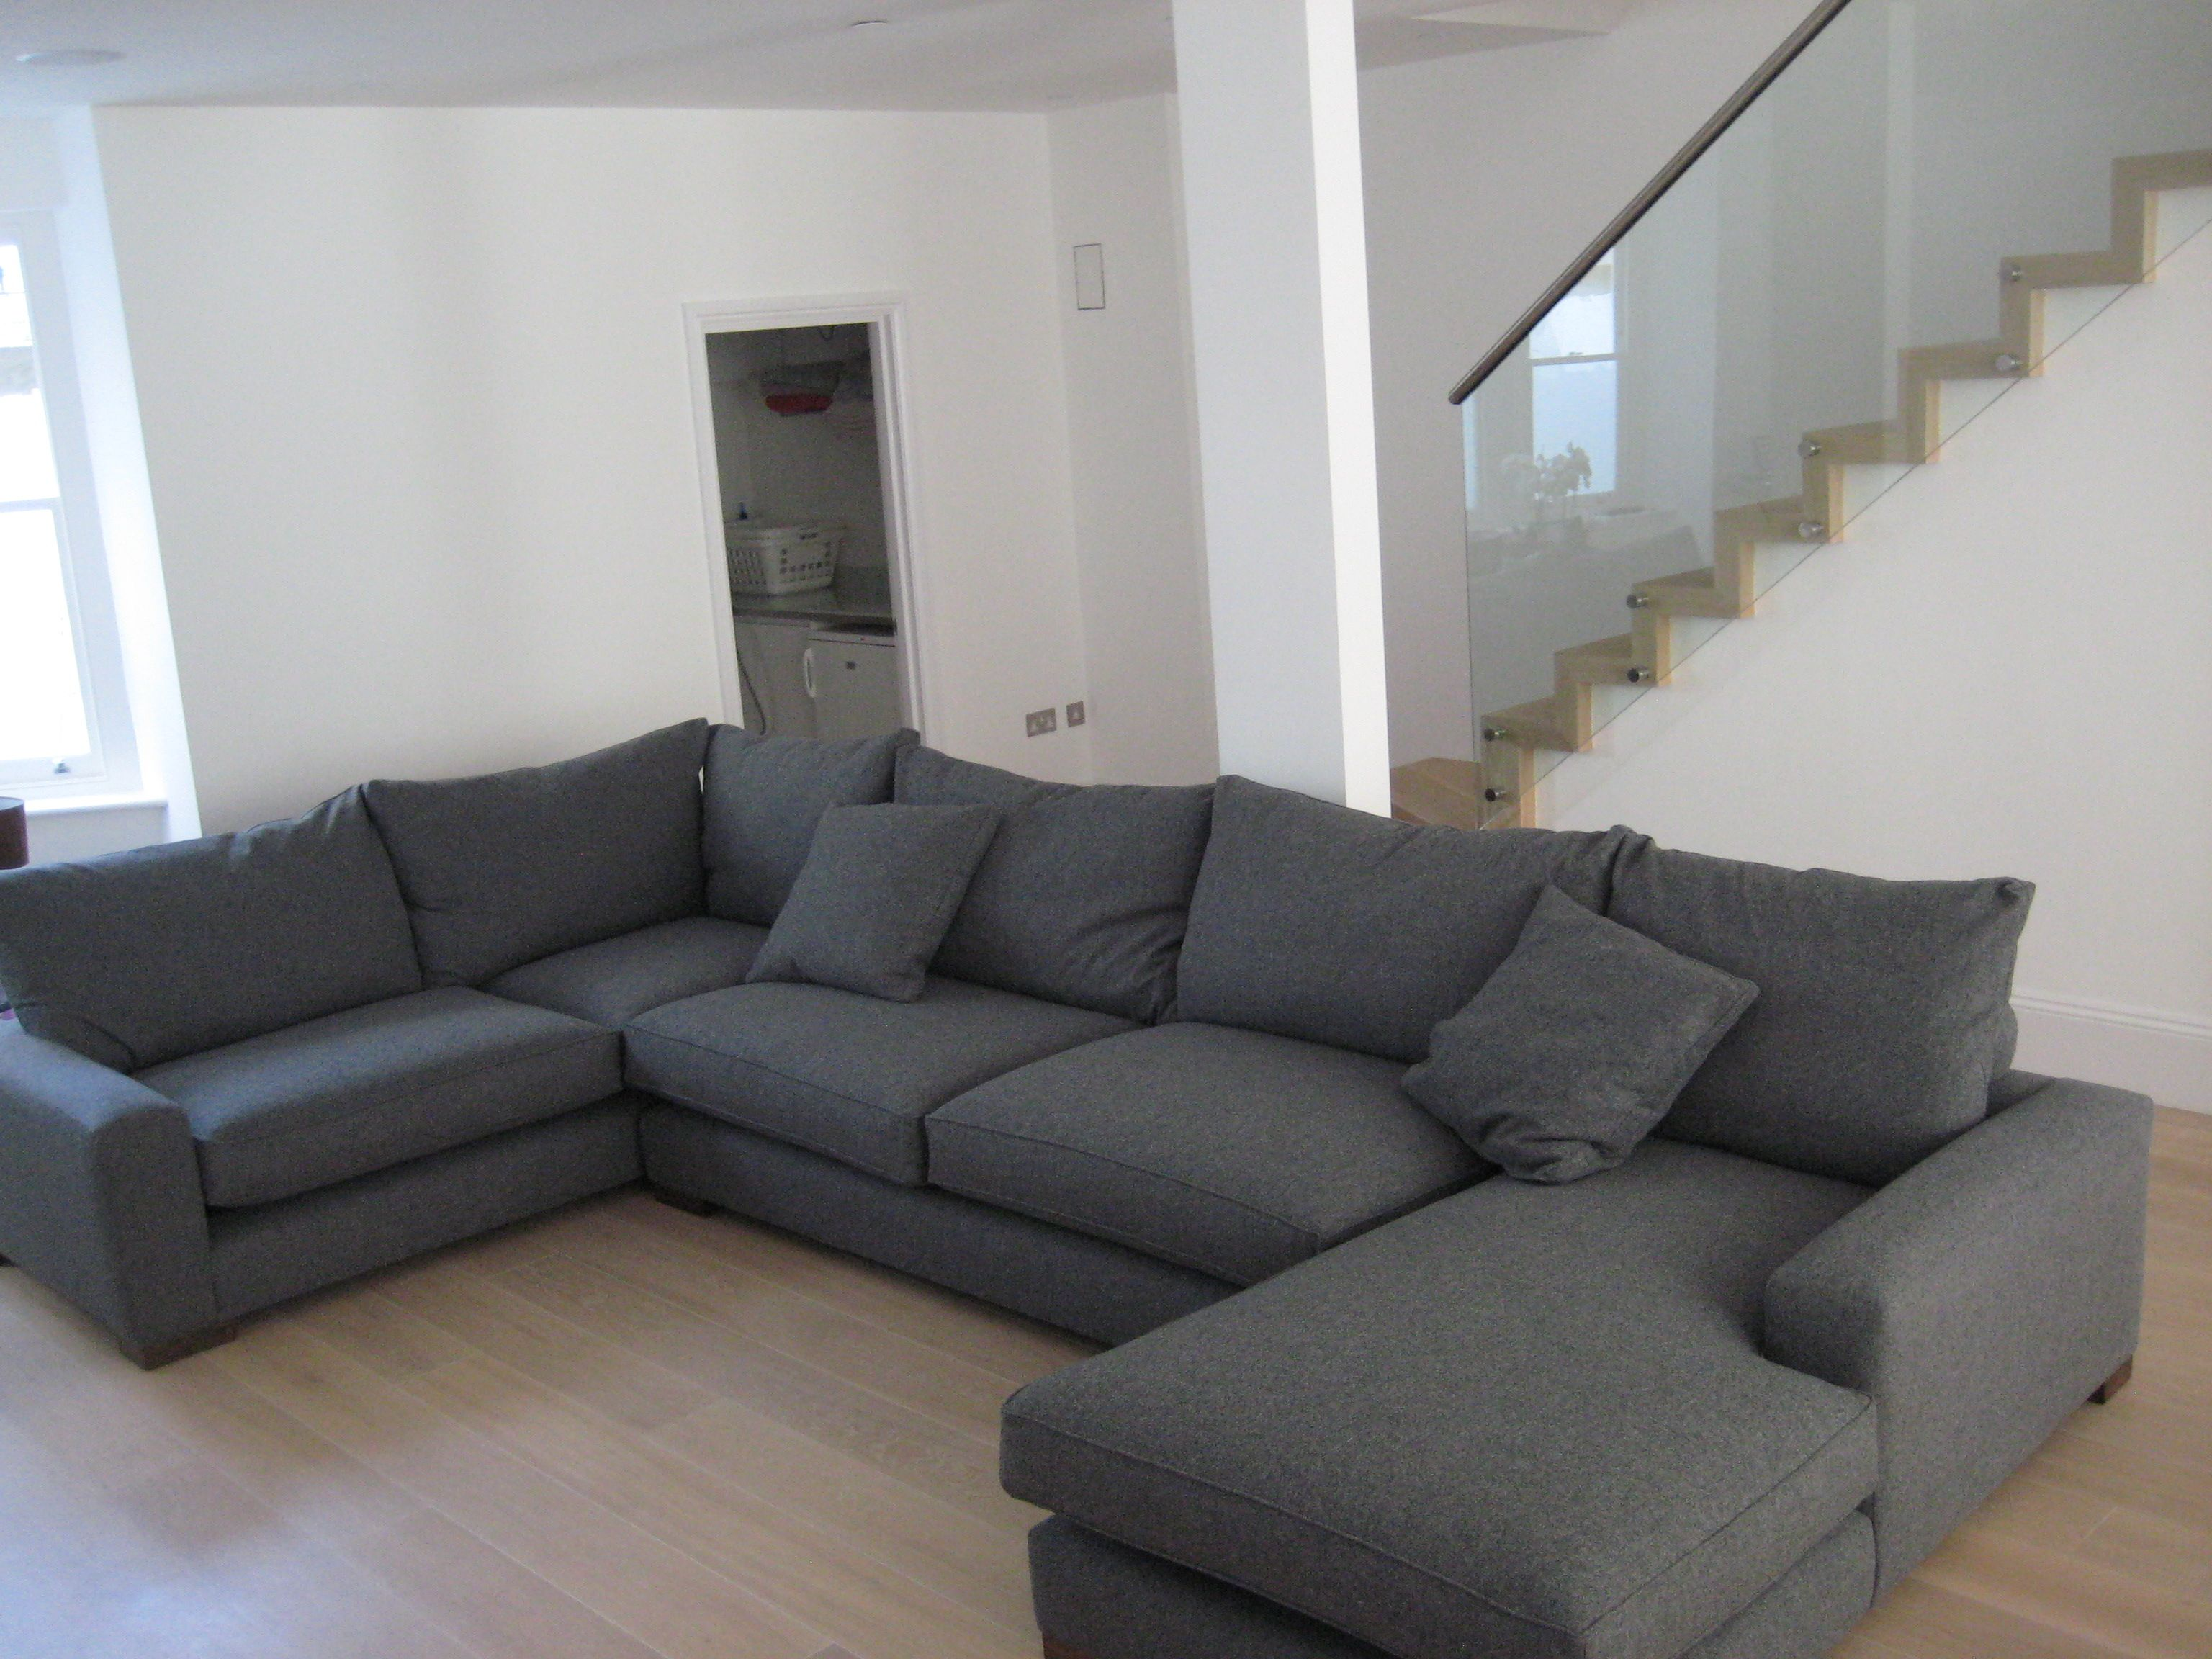 Bespoke Corner And Chaise Unit Based On The Freycinet With A